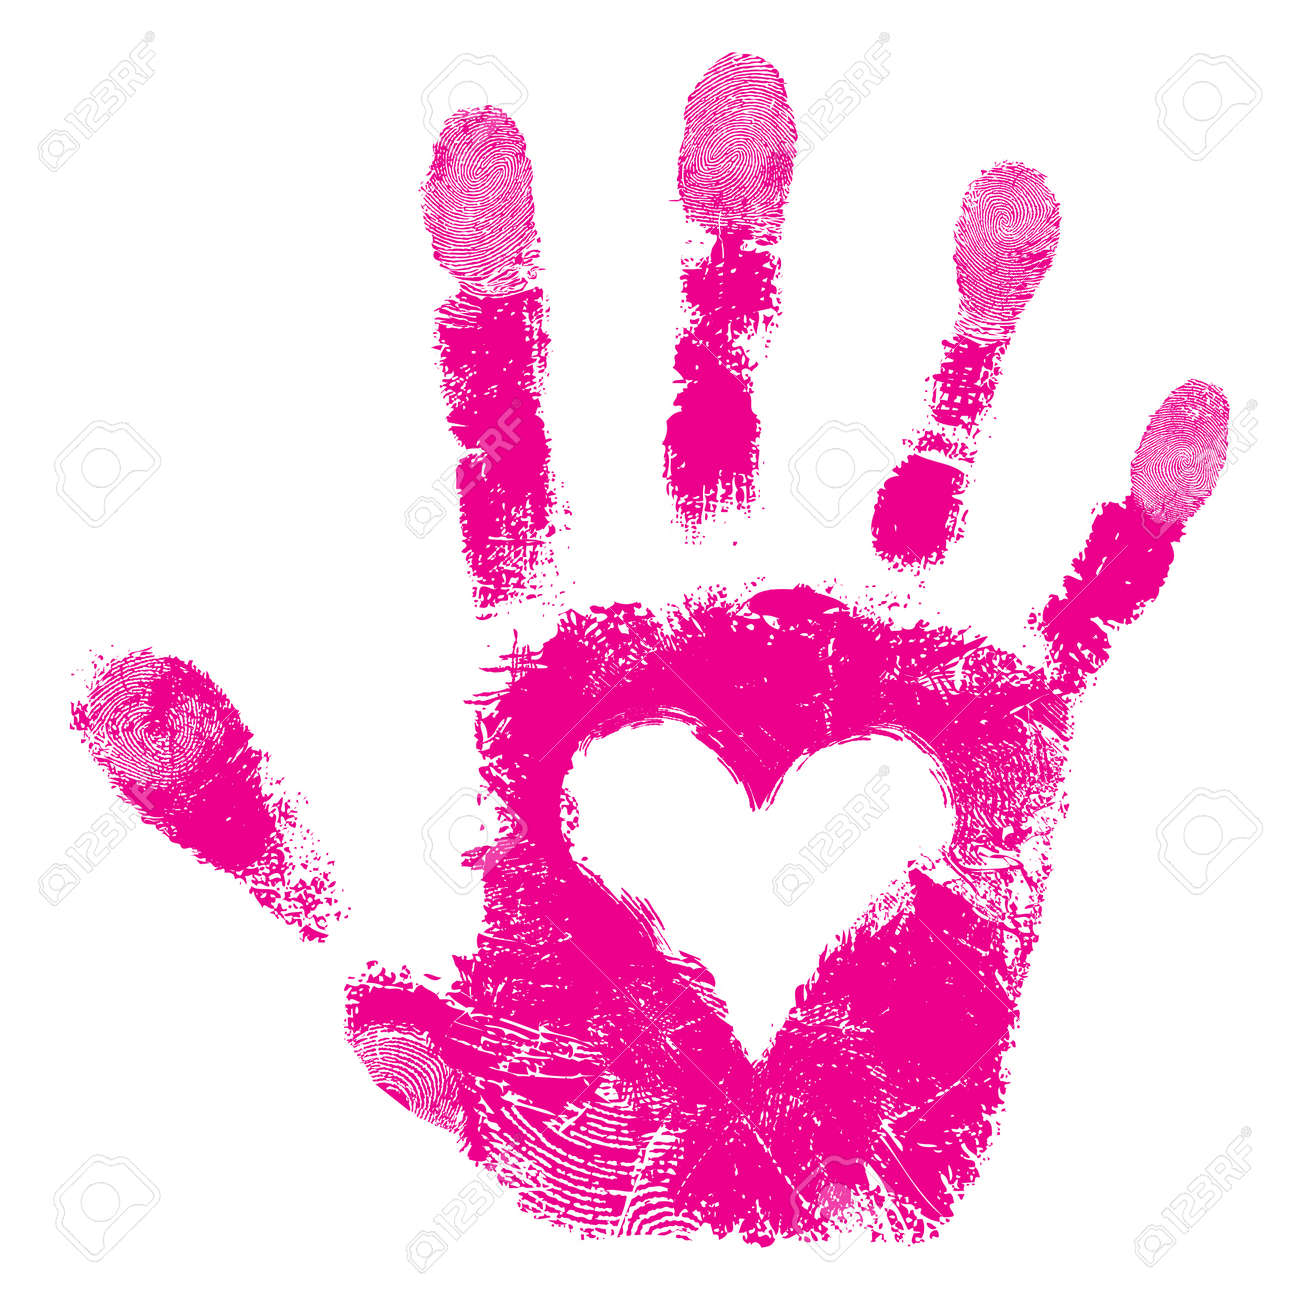 Heart in hand print, people support isolated cute skin texture pattern, love valentine background,grunge illustration Stock Vector - 14806292